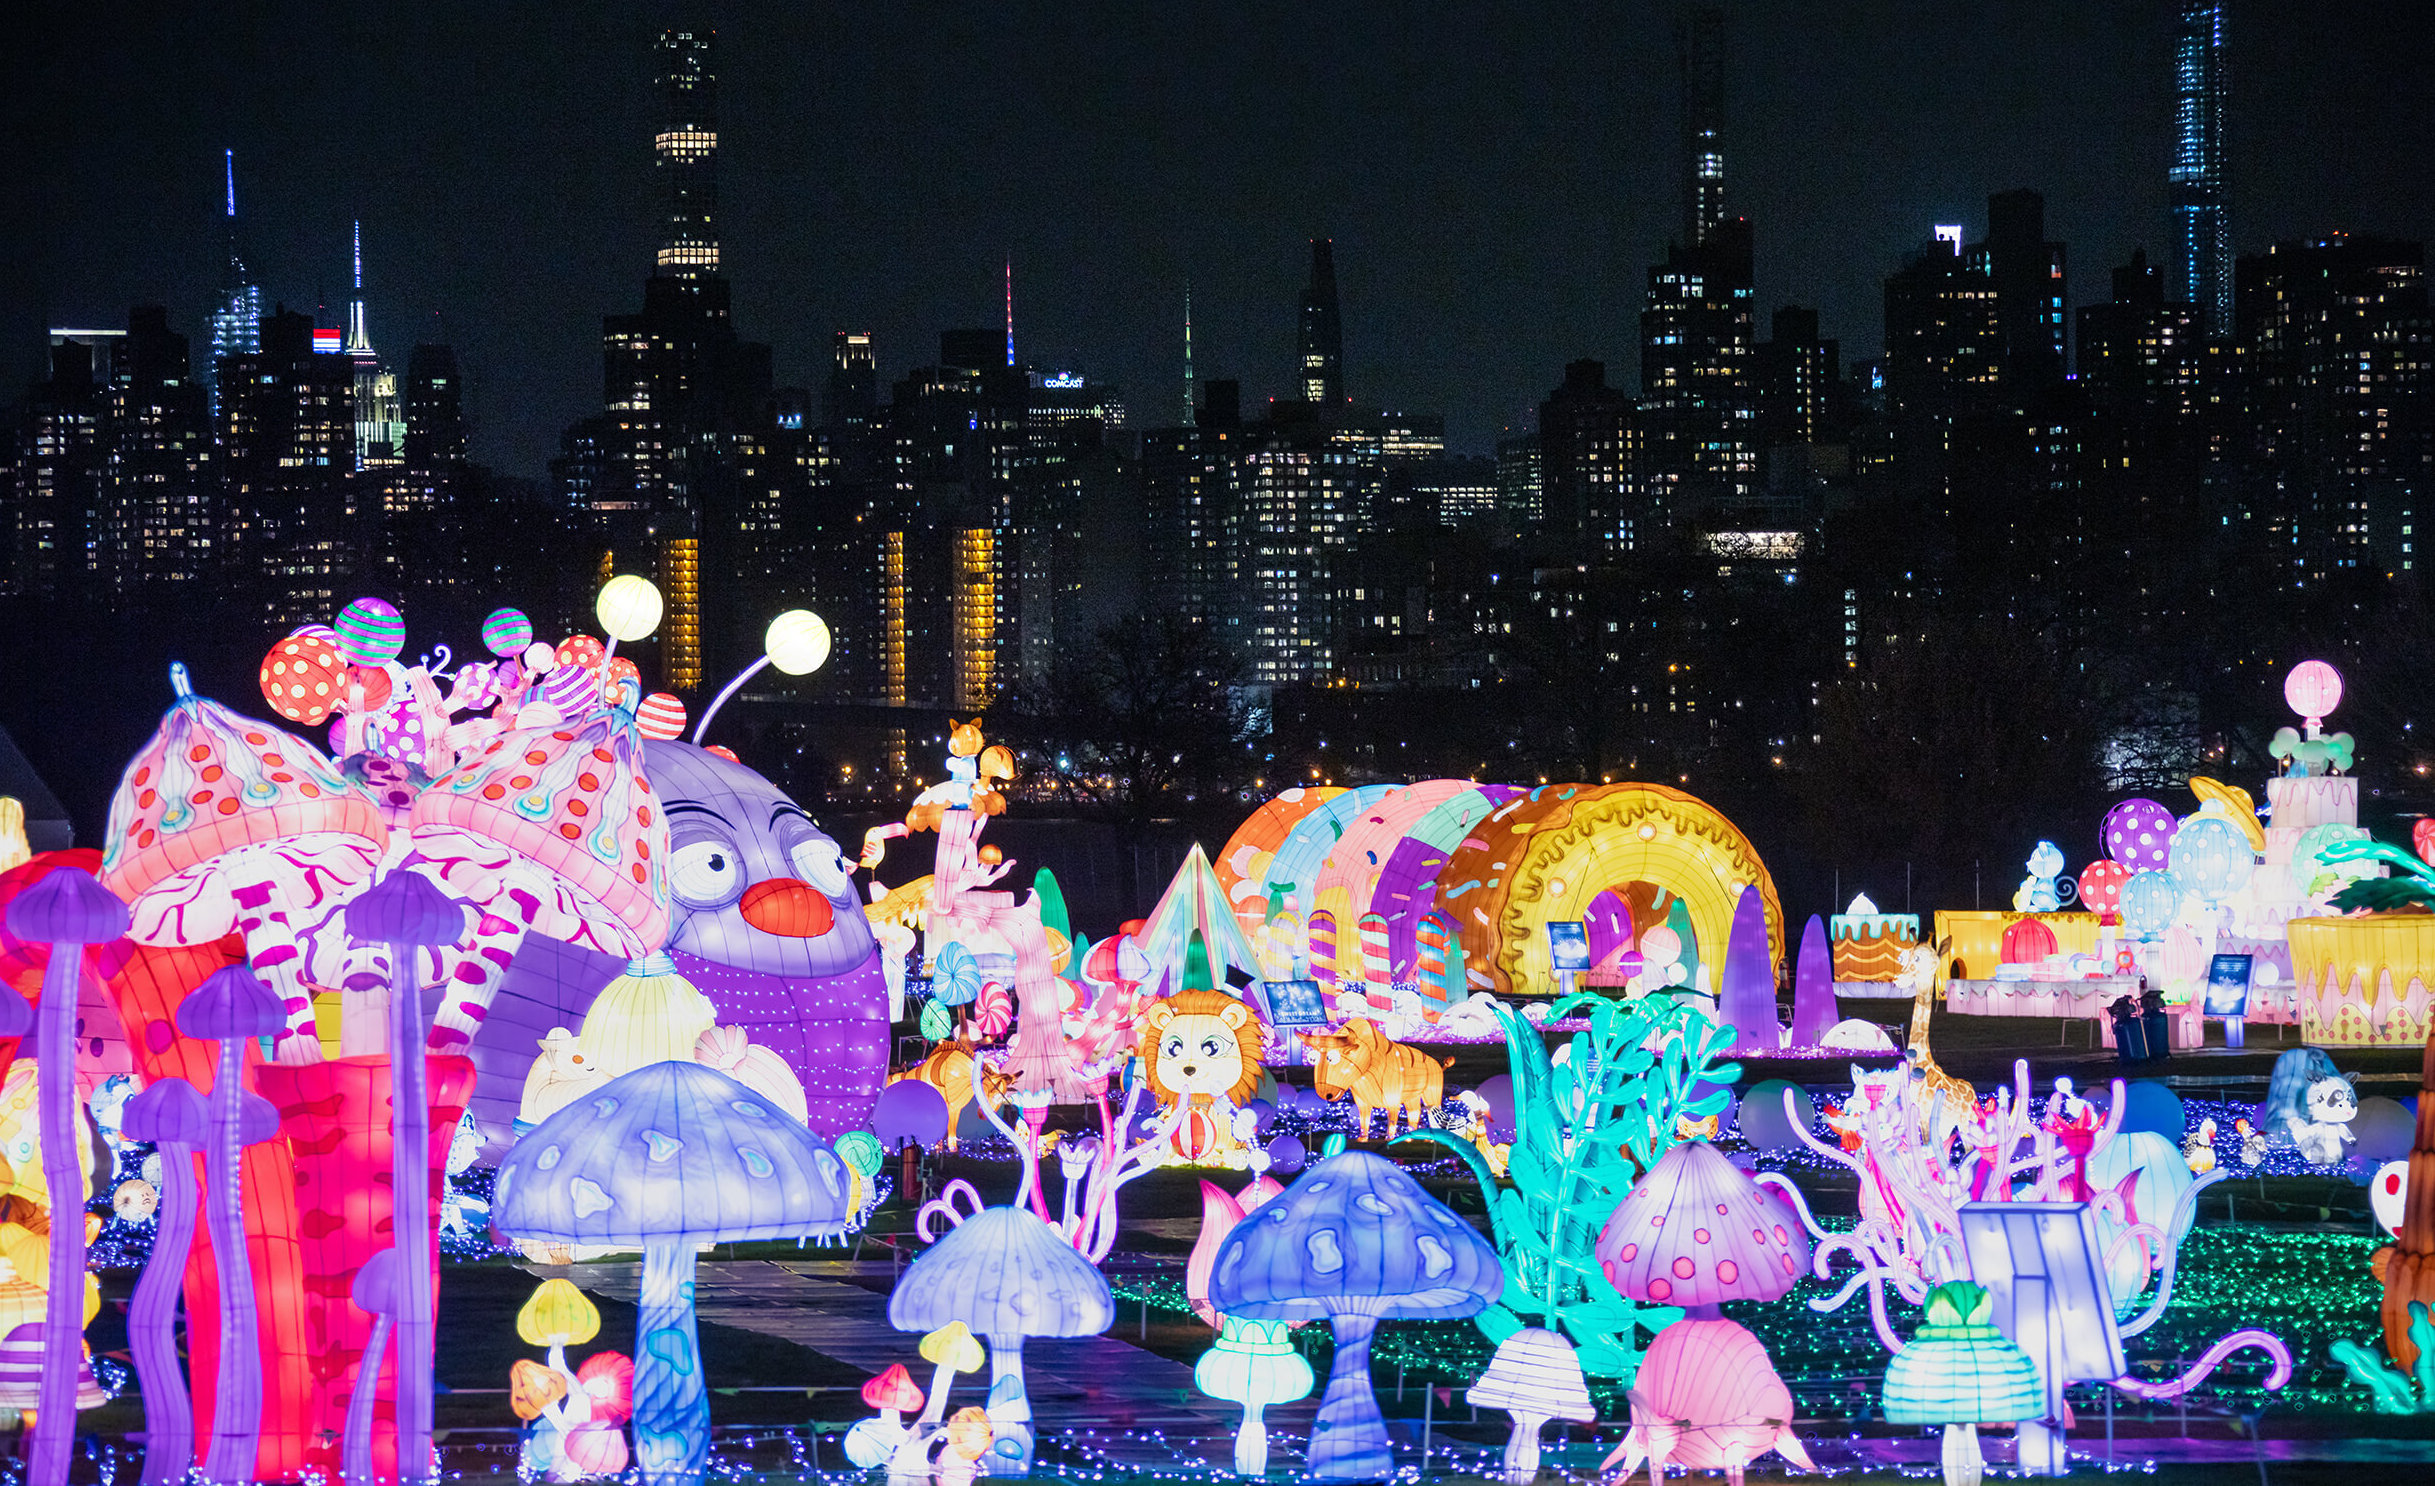 nyc LuminoCity festival lights